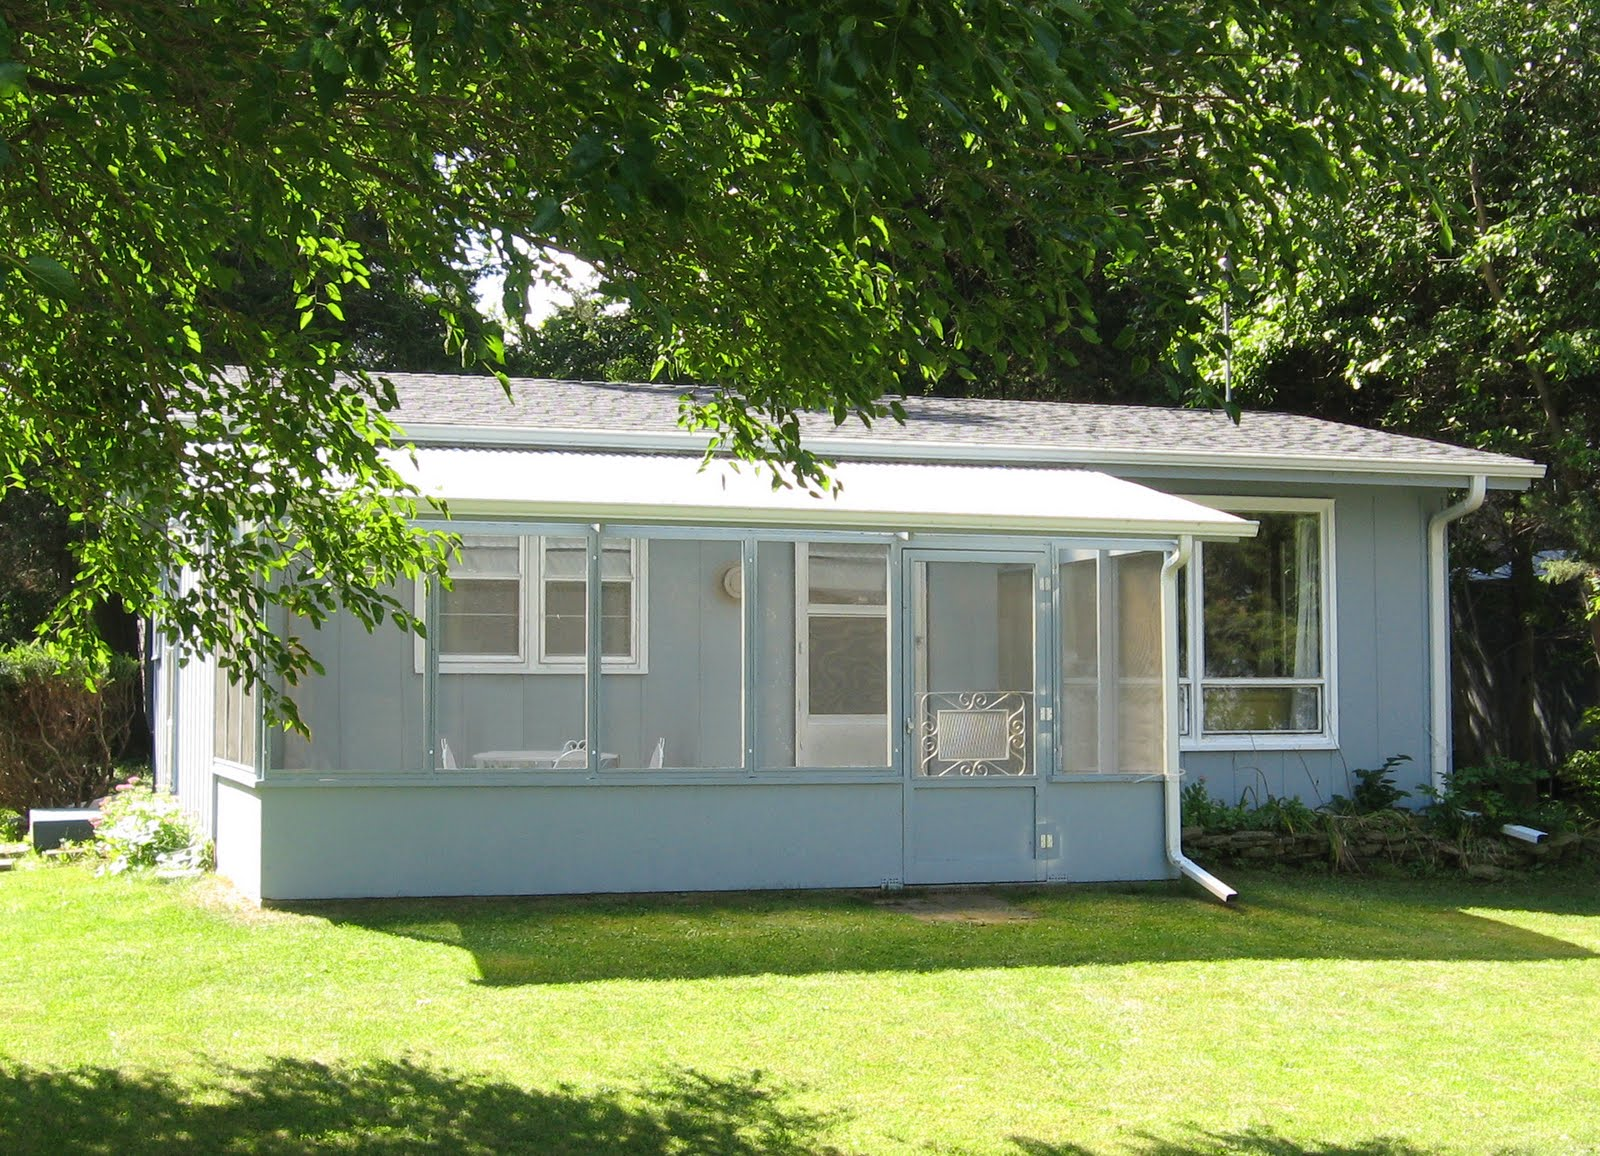 Wisconsin Lake Cottage For Sale!